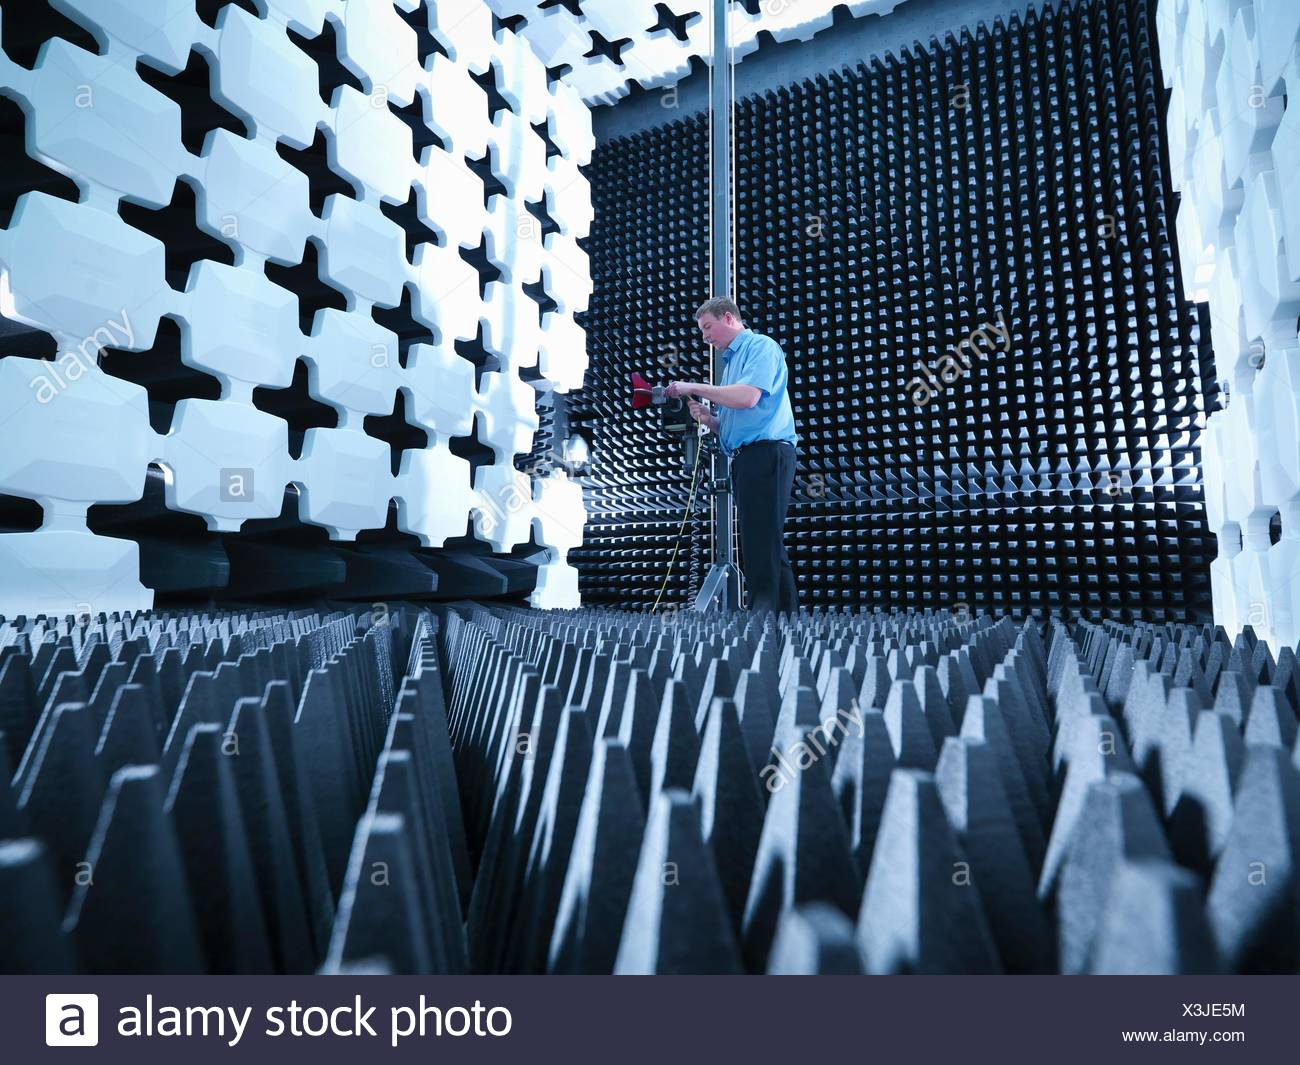 Engineer in anechoic chamber with horn antenna set up for Electromagnetic compatibility (EMC) radiated emission testing - Stock Image